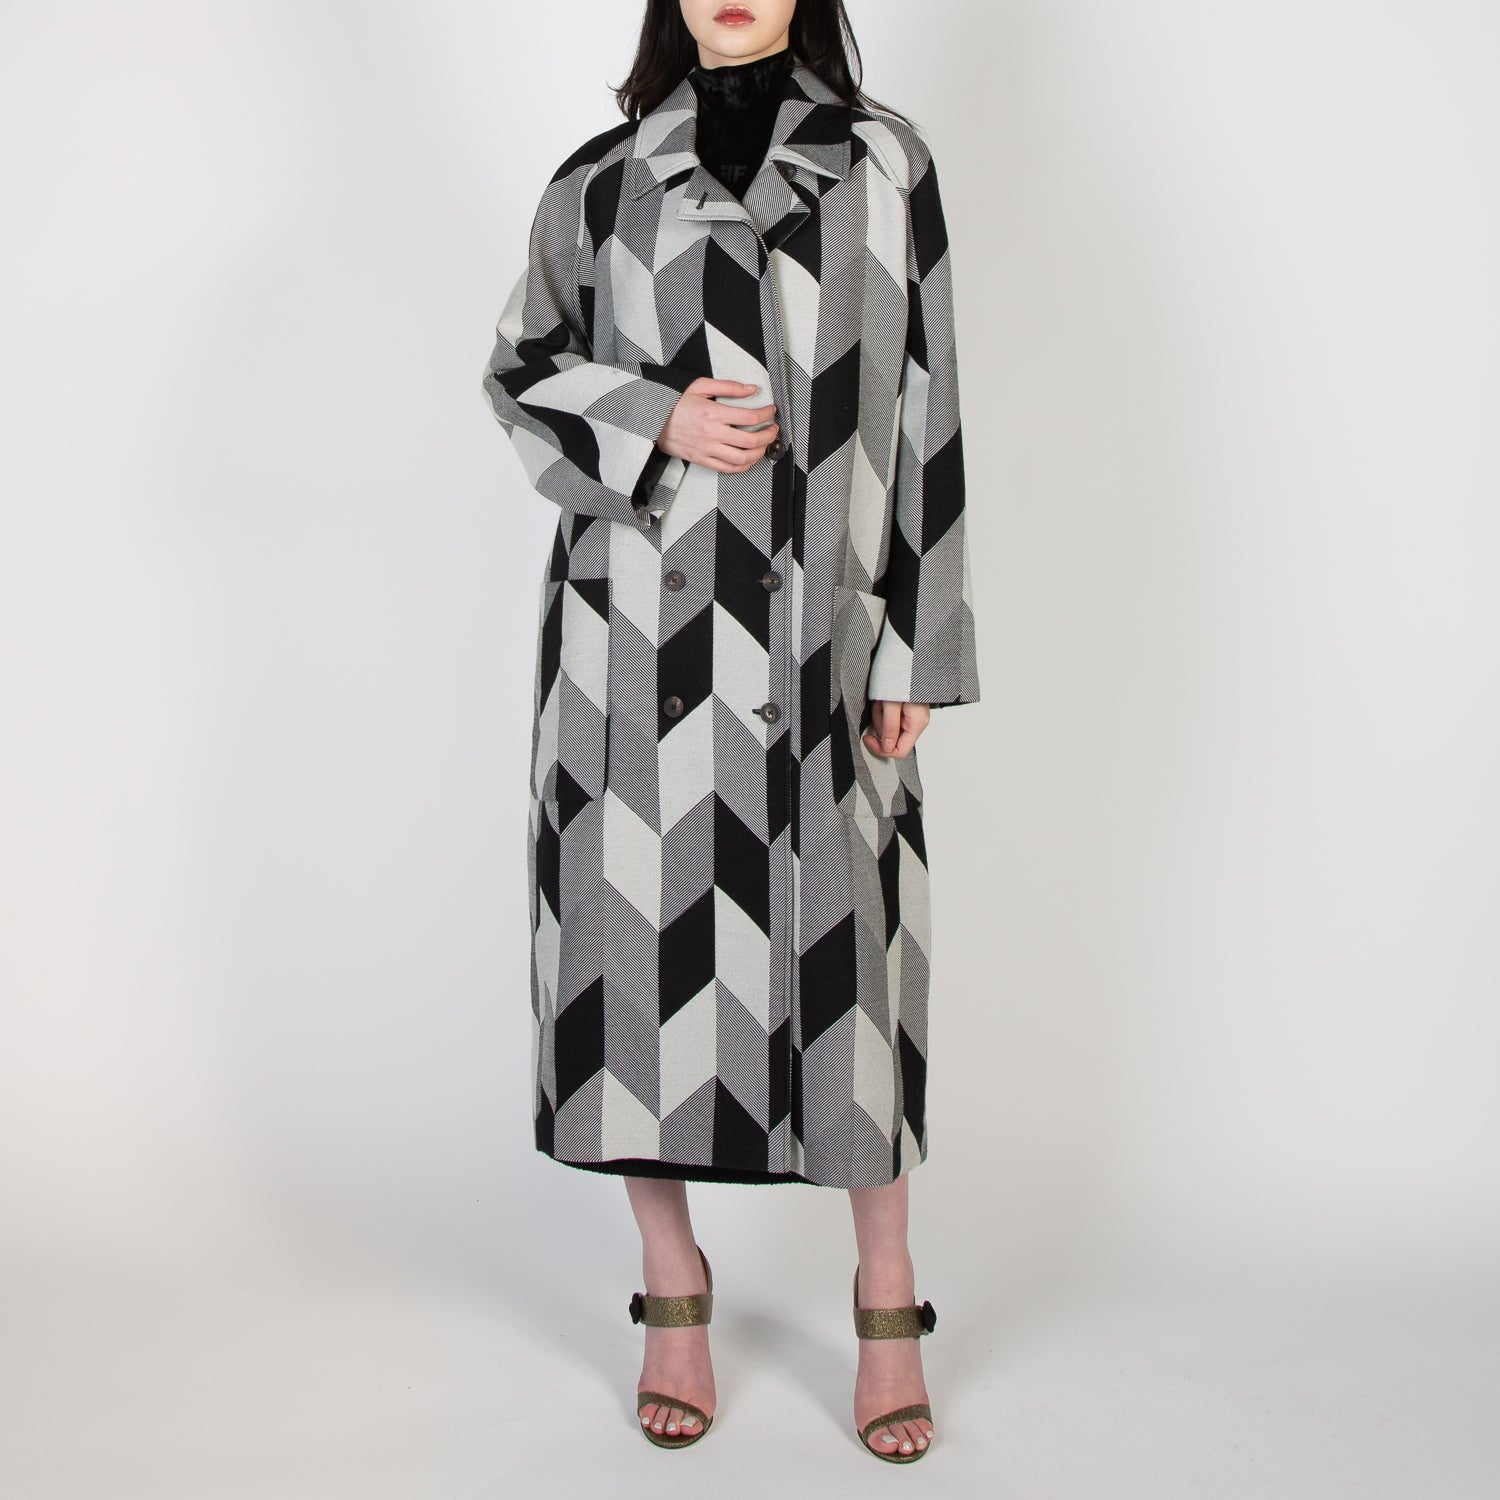 double breast black and white checkered coat by Frenken at Secret Location concept store vancouver canada